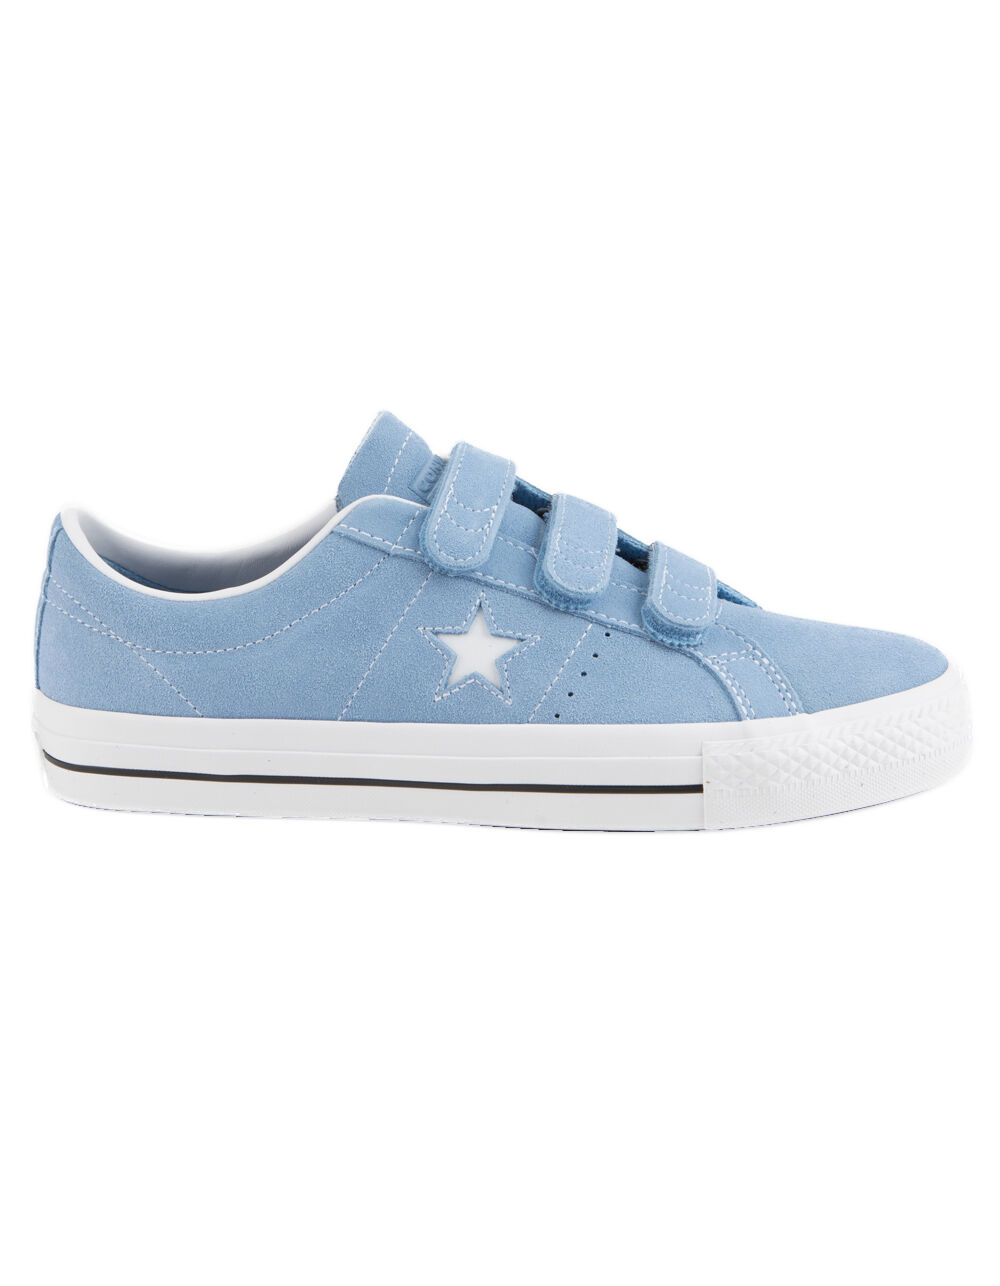 CONVERSE ONE STAR PRO 3V OX LIGHT BLUE & WHITE SHOES